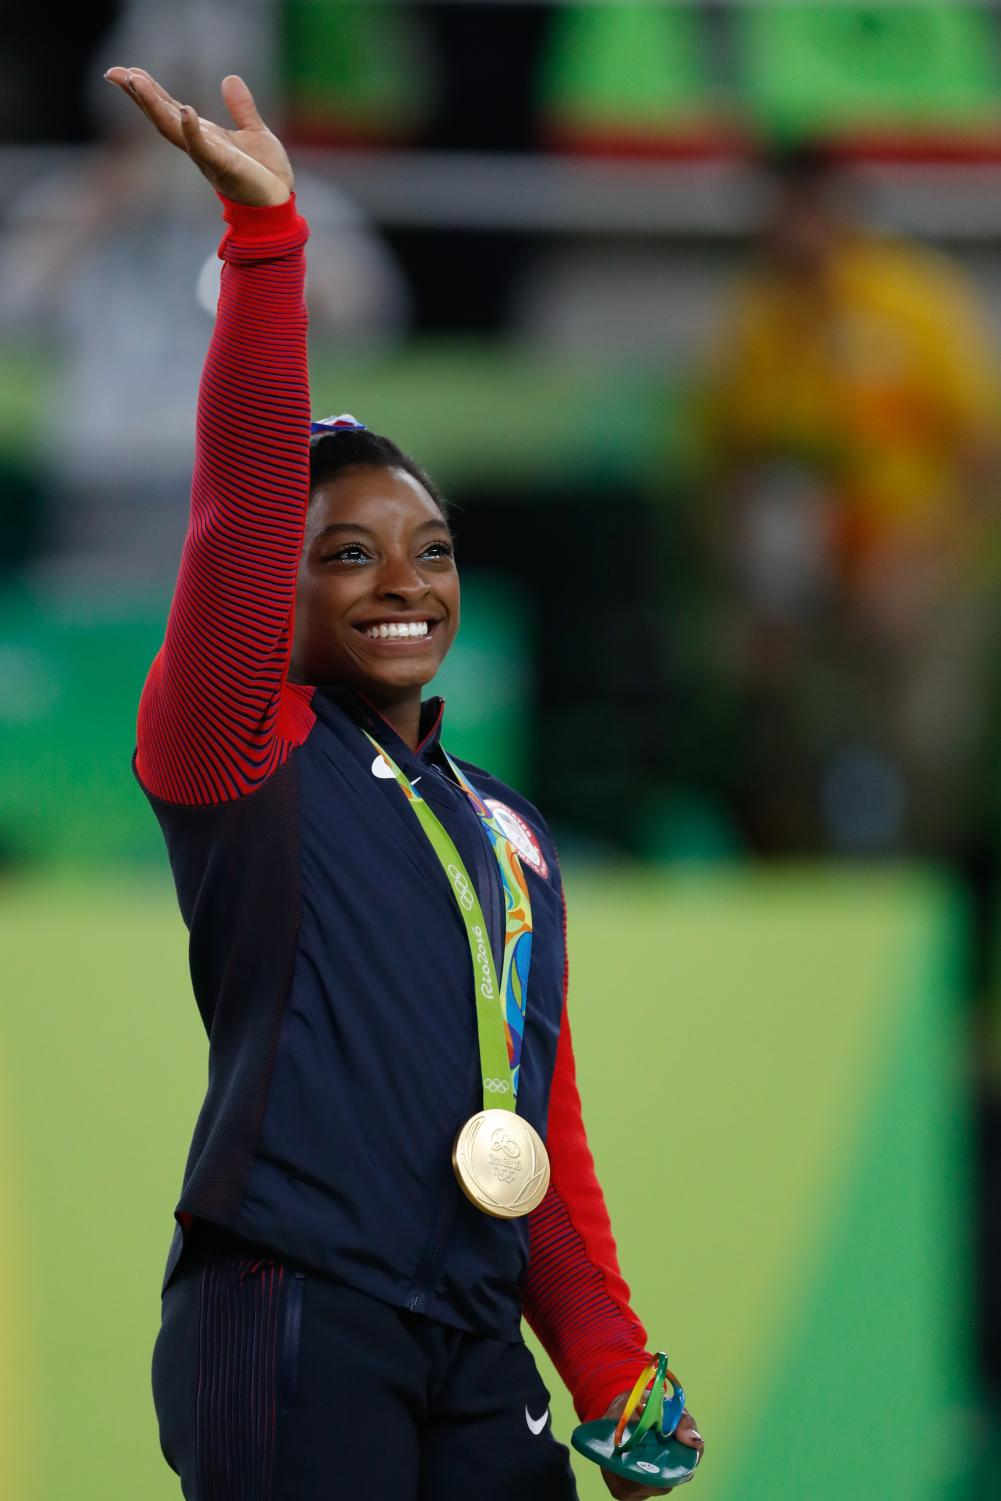 Waving at the crowd, Team USA gymnast Simone Biles celebrates a gold medal victory. Simone Biles was one of the female athletes to come out and accuse Dr. Nasser of sexual assault.